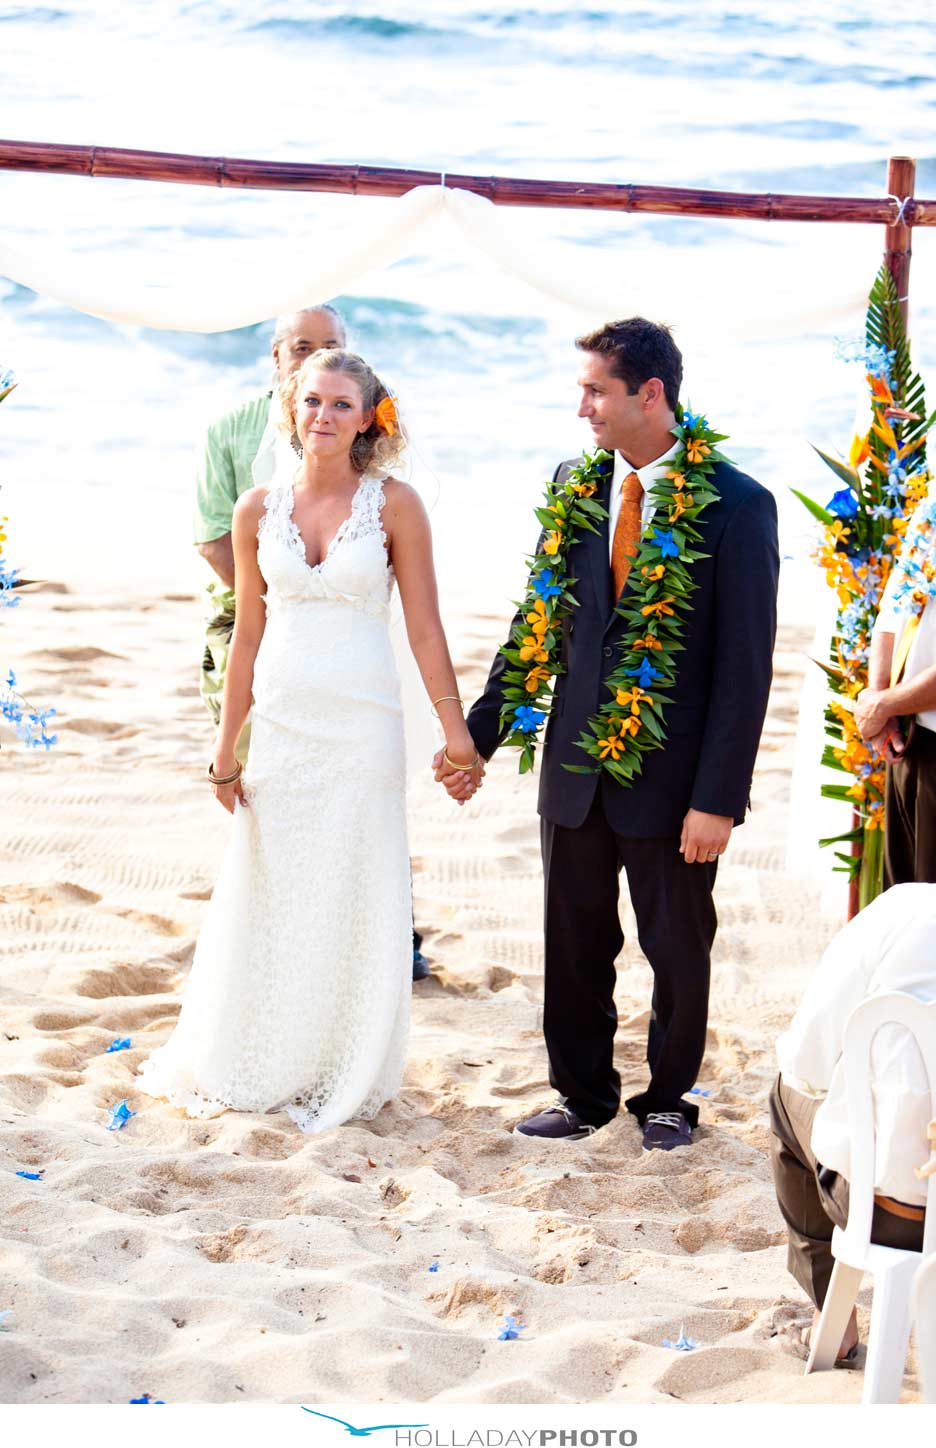 beach-wedding-Hawaii-sunset-beach-2